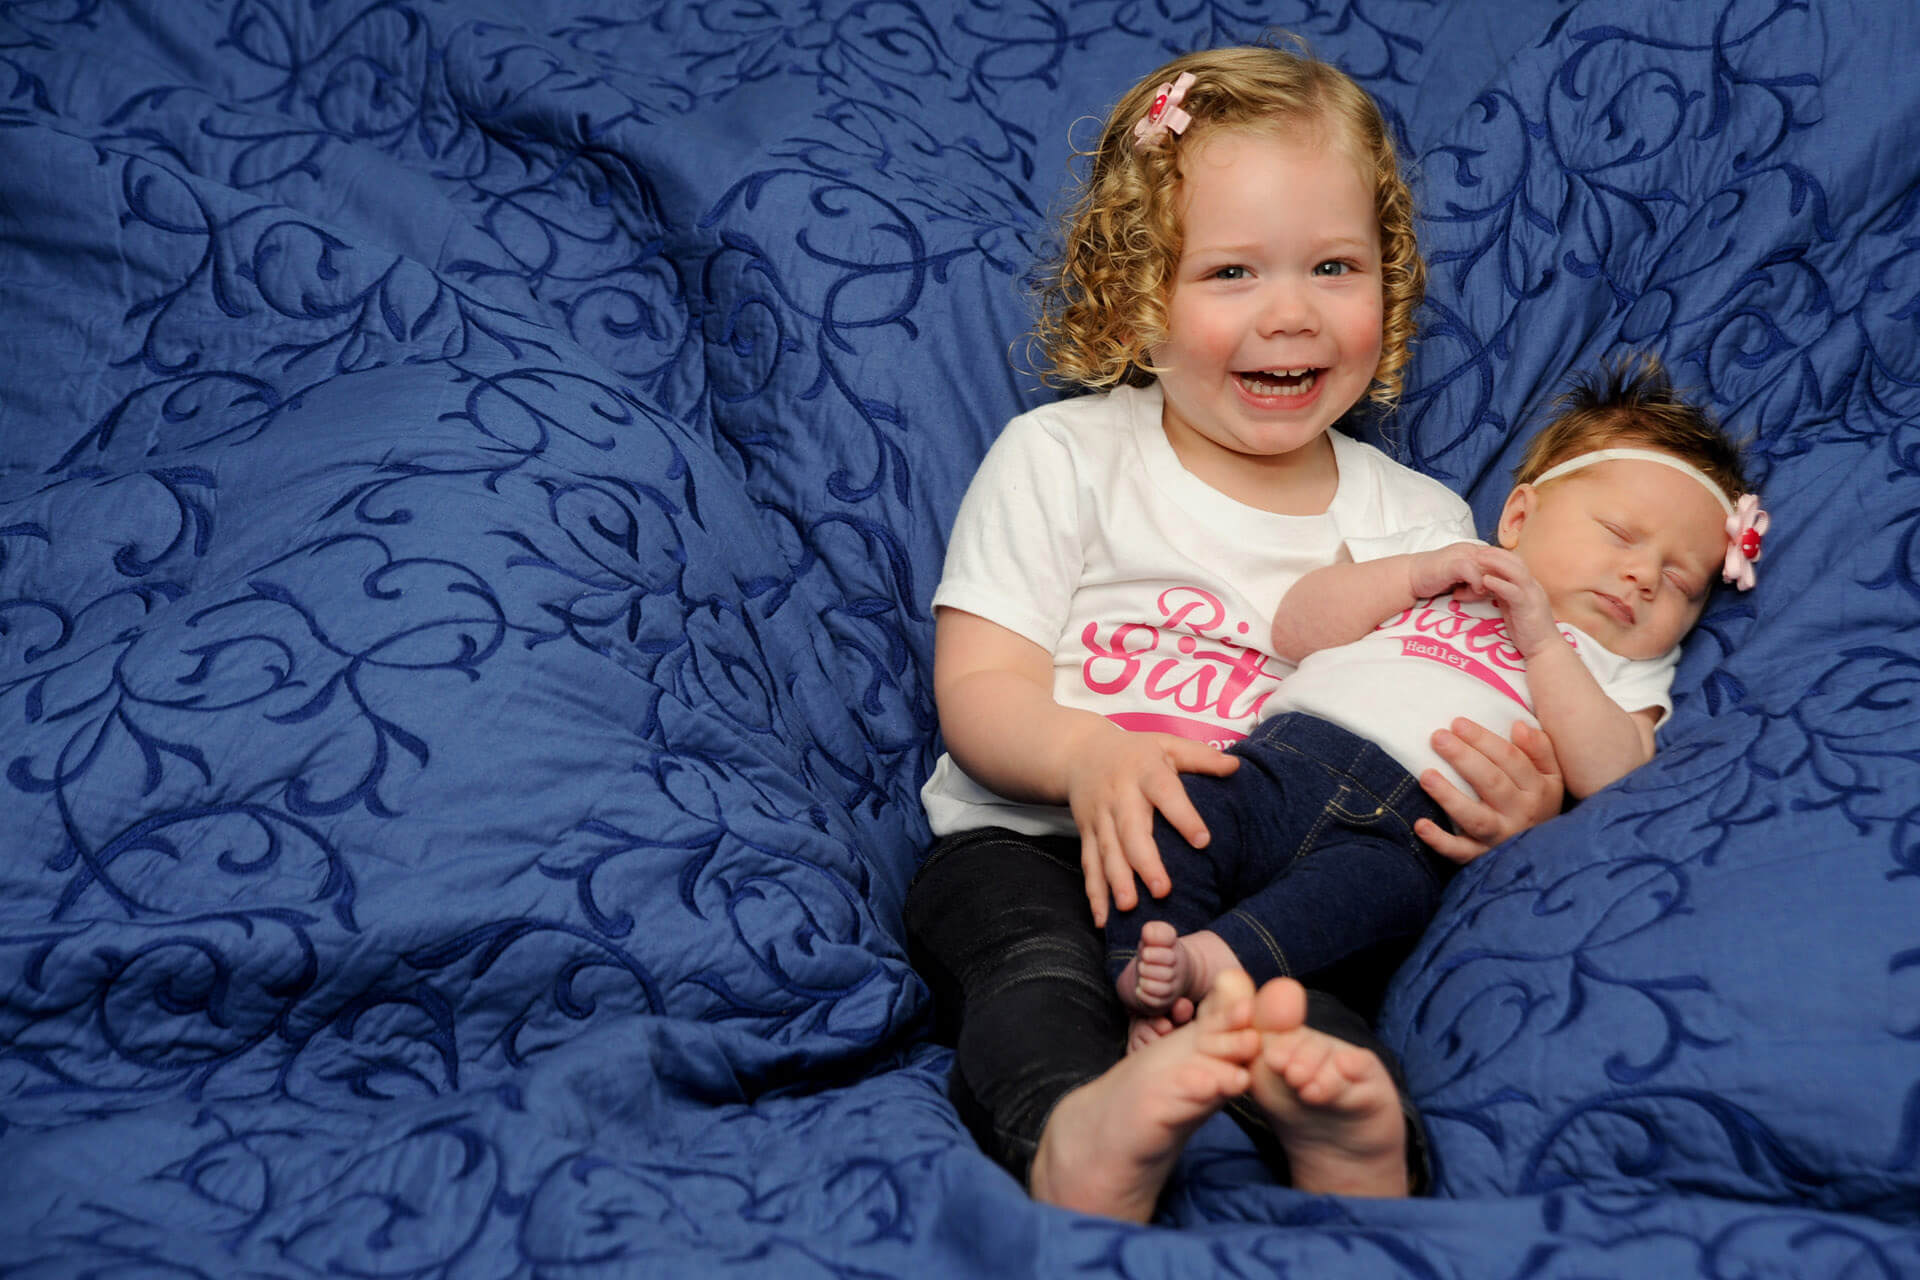 Best Detroit baby photographer works with families to capture first photos with siblings in their metro Detroit, Michigan area homes for baby picture photo shoots.